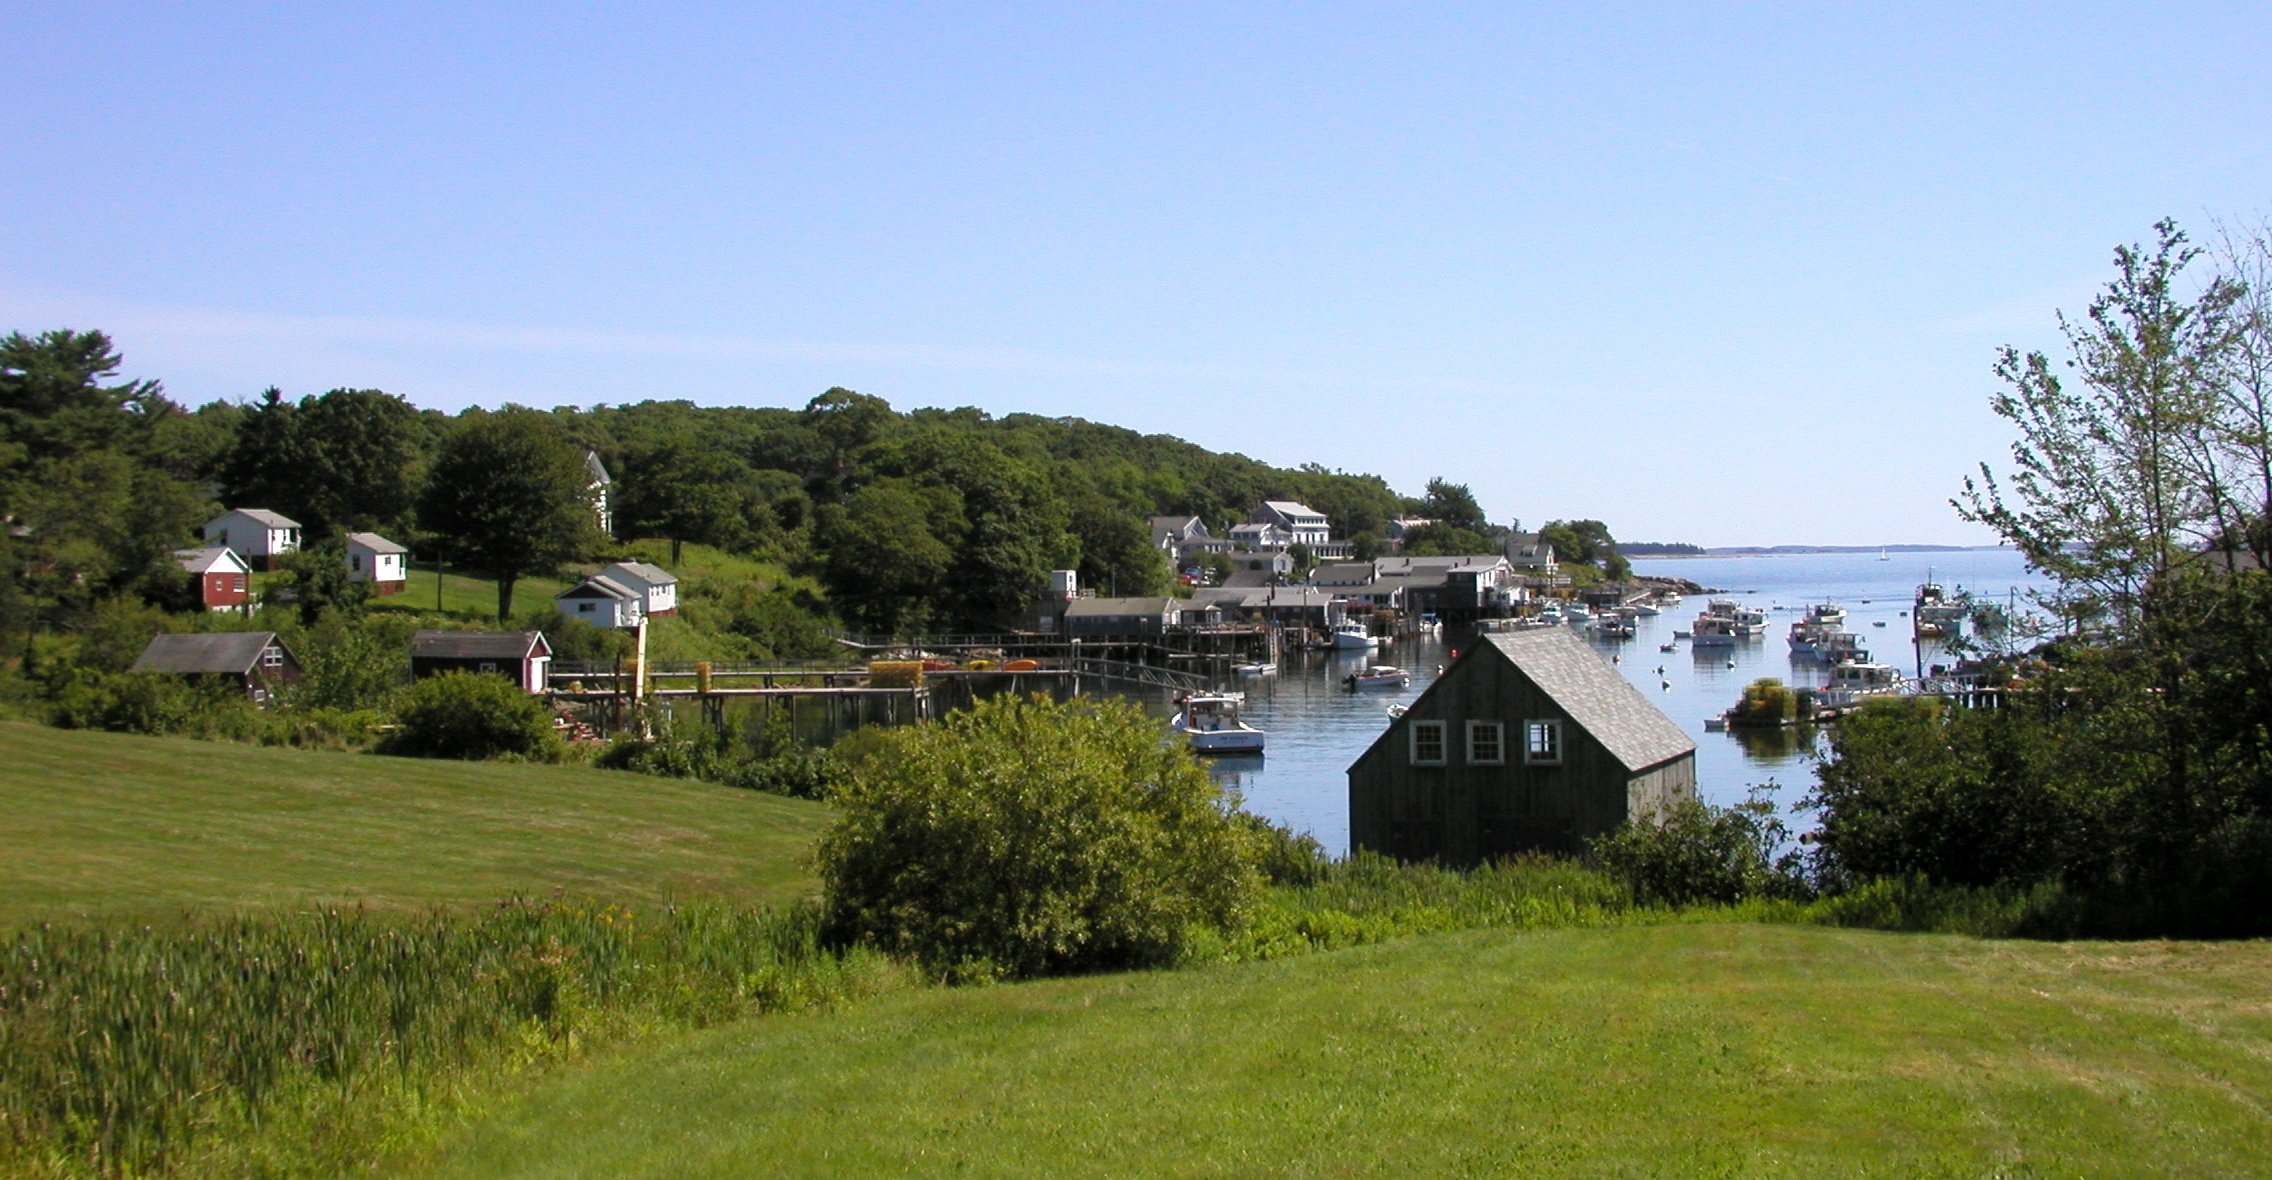 New Harbor--a classic Maine working harbor